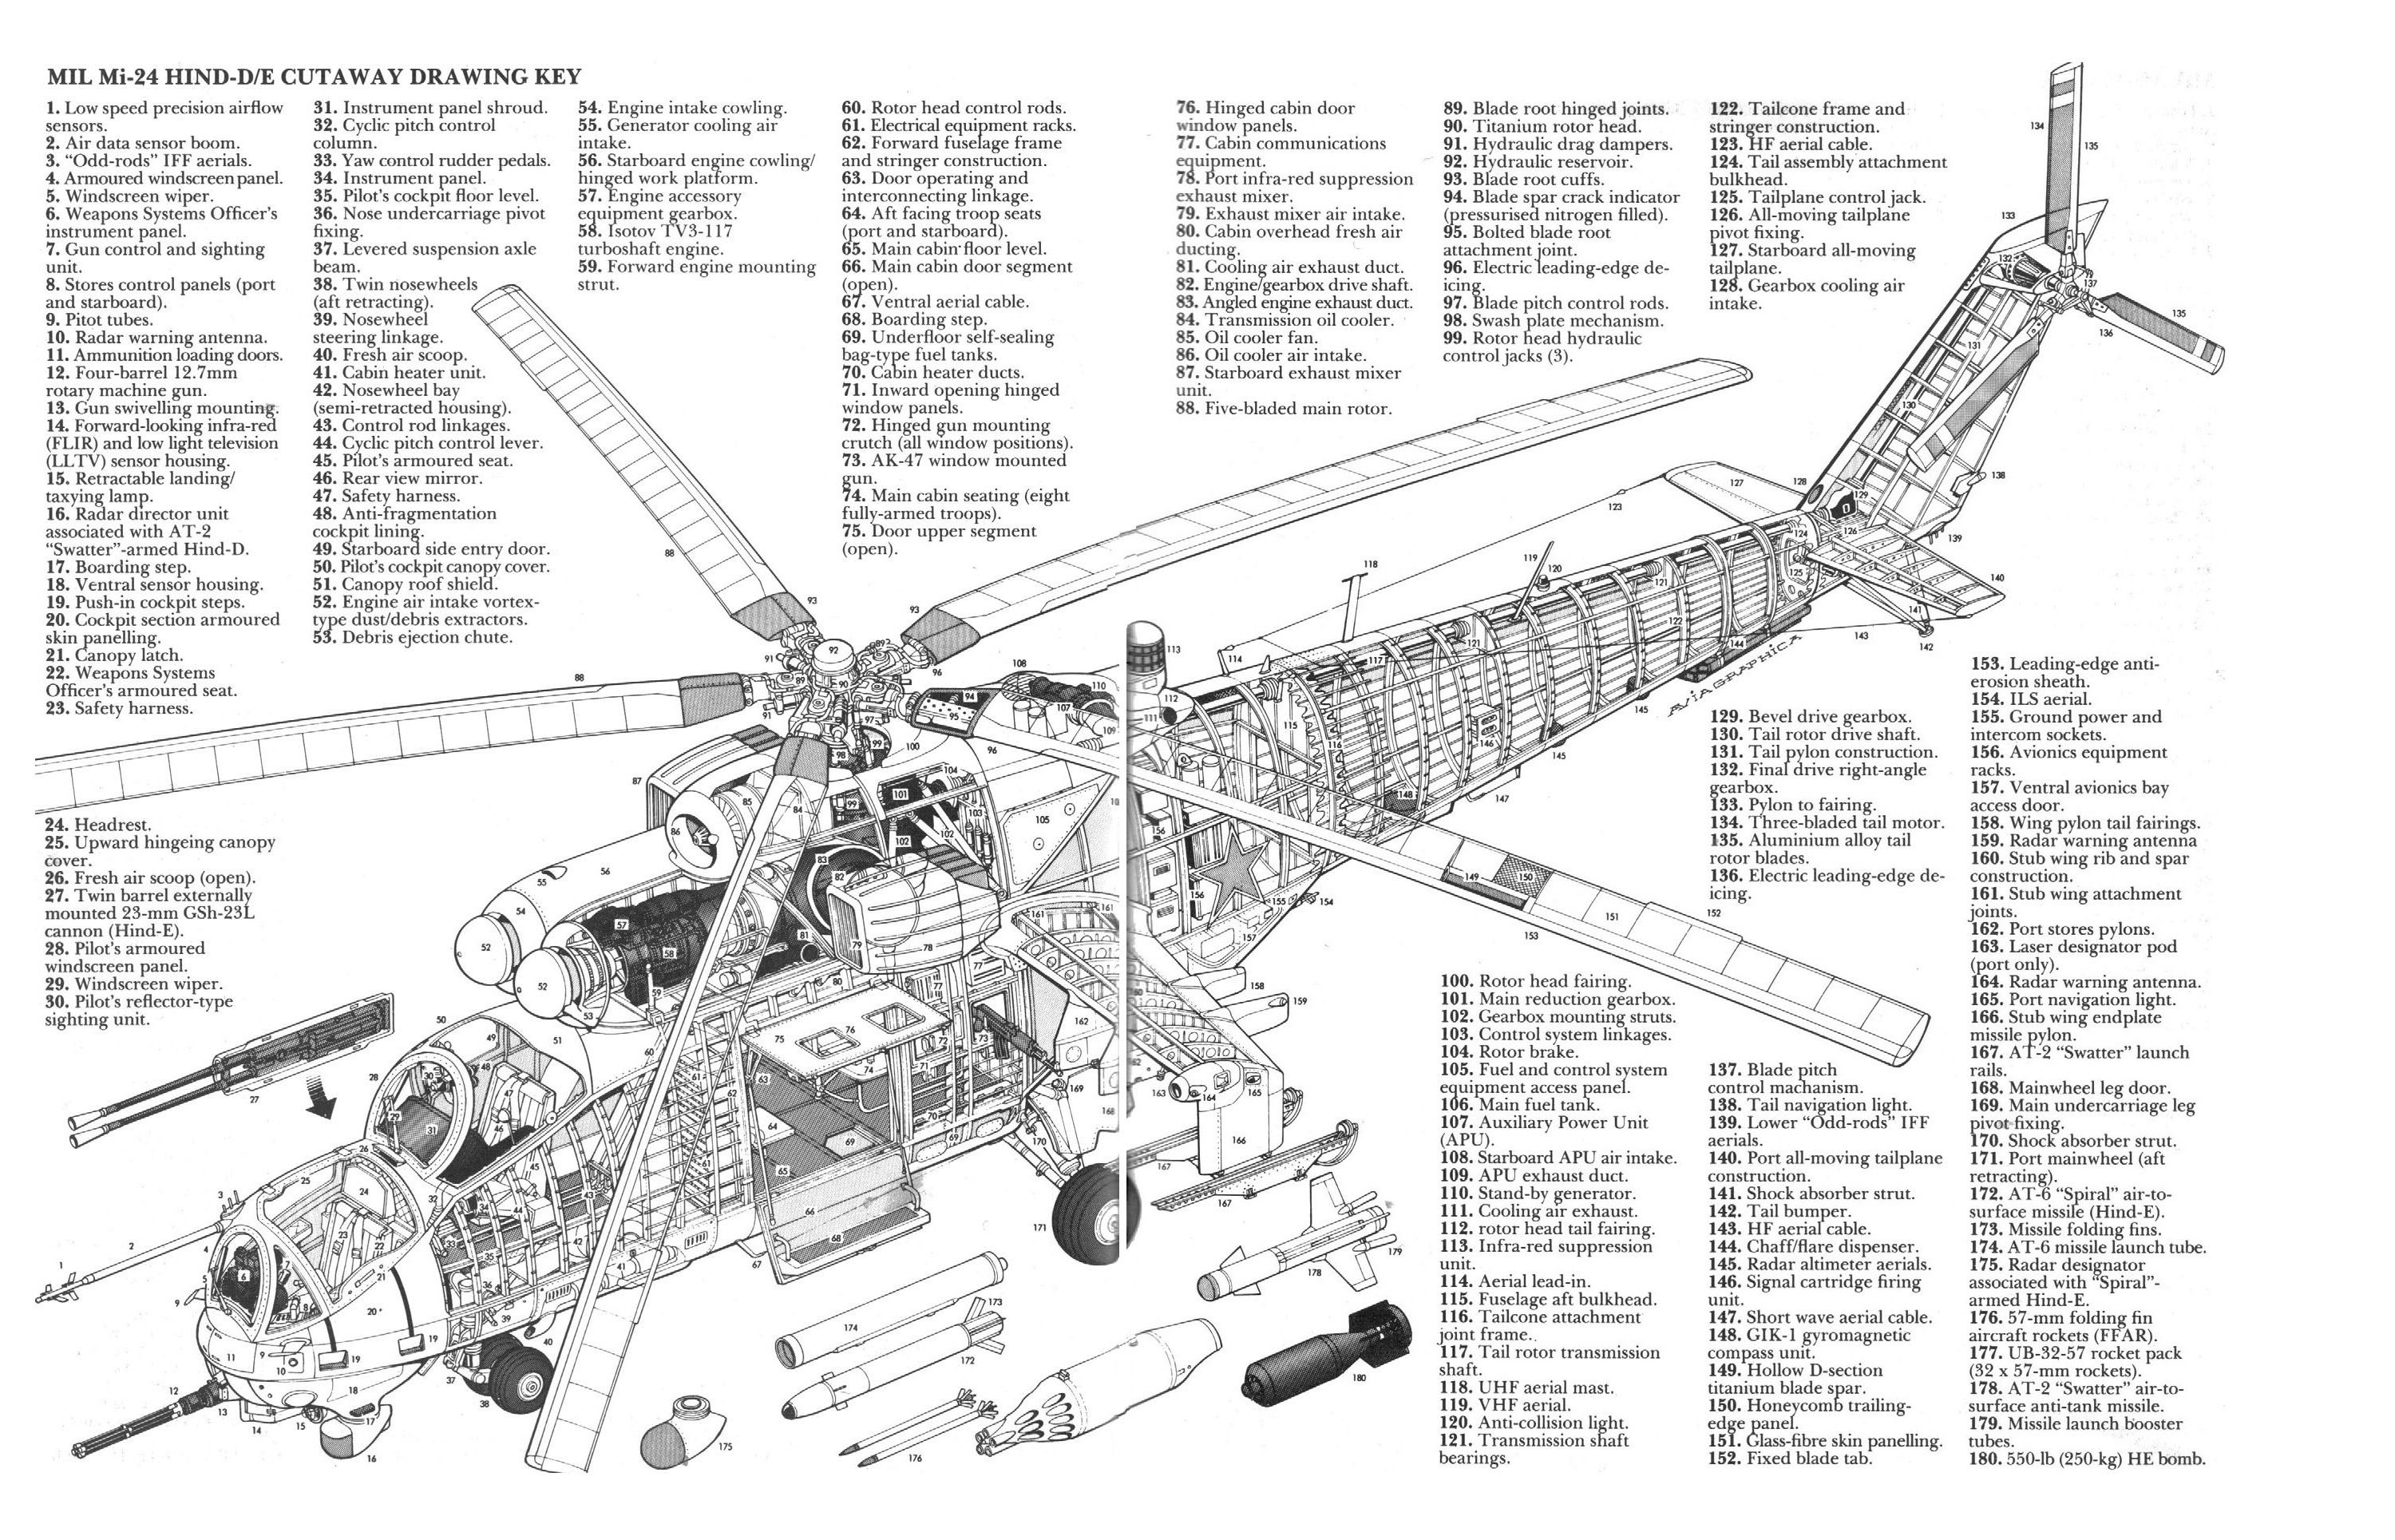 Schematics Of Chinook Helicopters Modern Design Wiring Diagram Basic Motor Control Electrical Engineering Pinterest Mi 24 Aviation Helicopter Schematic Rh Com F 16 A380